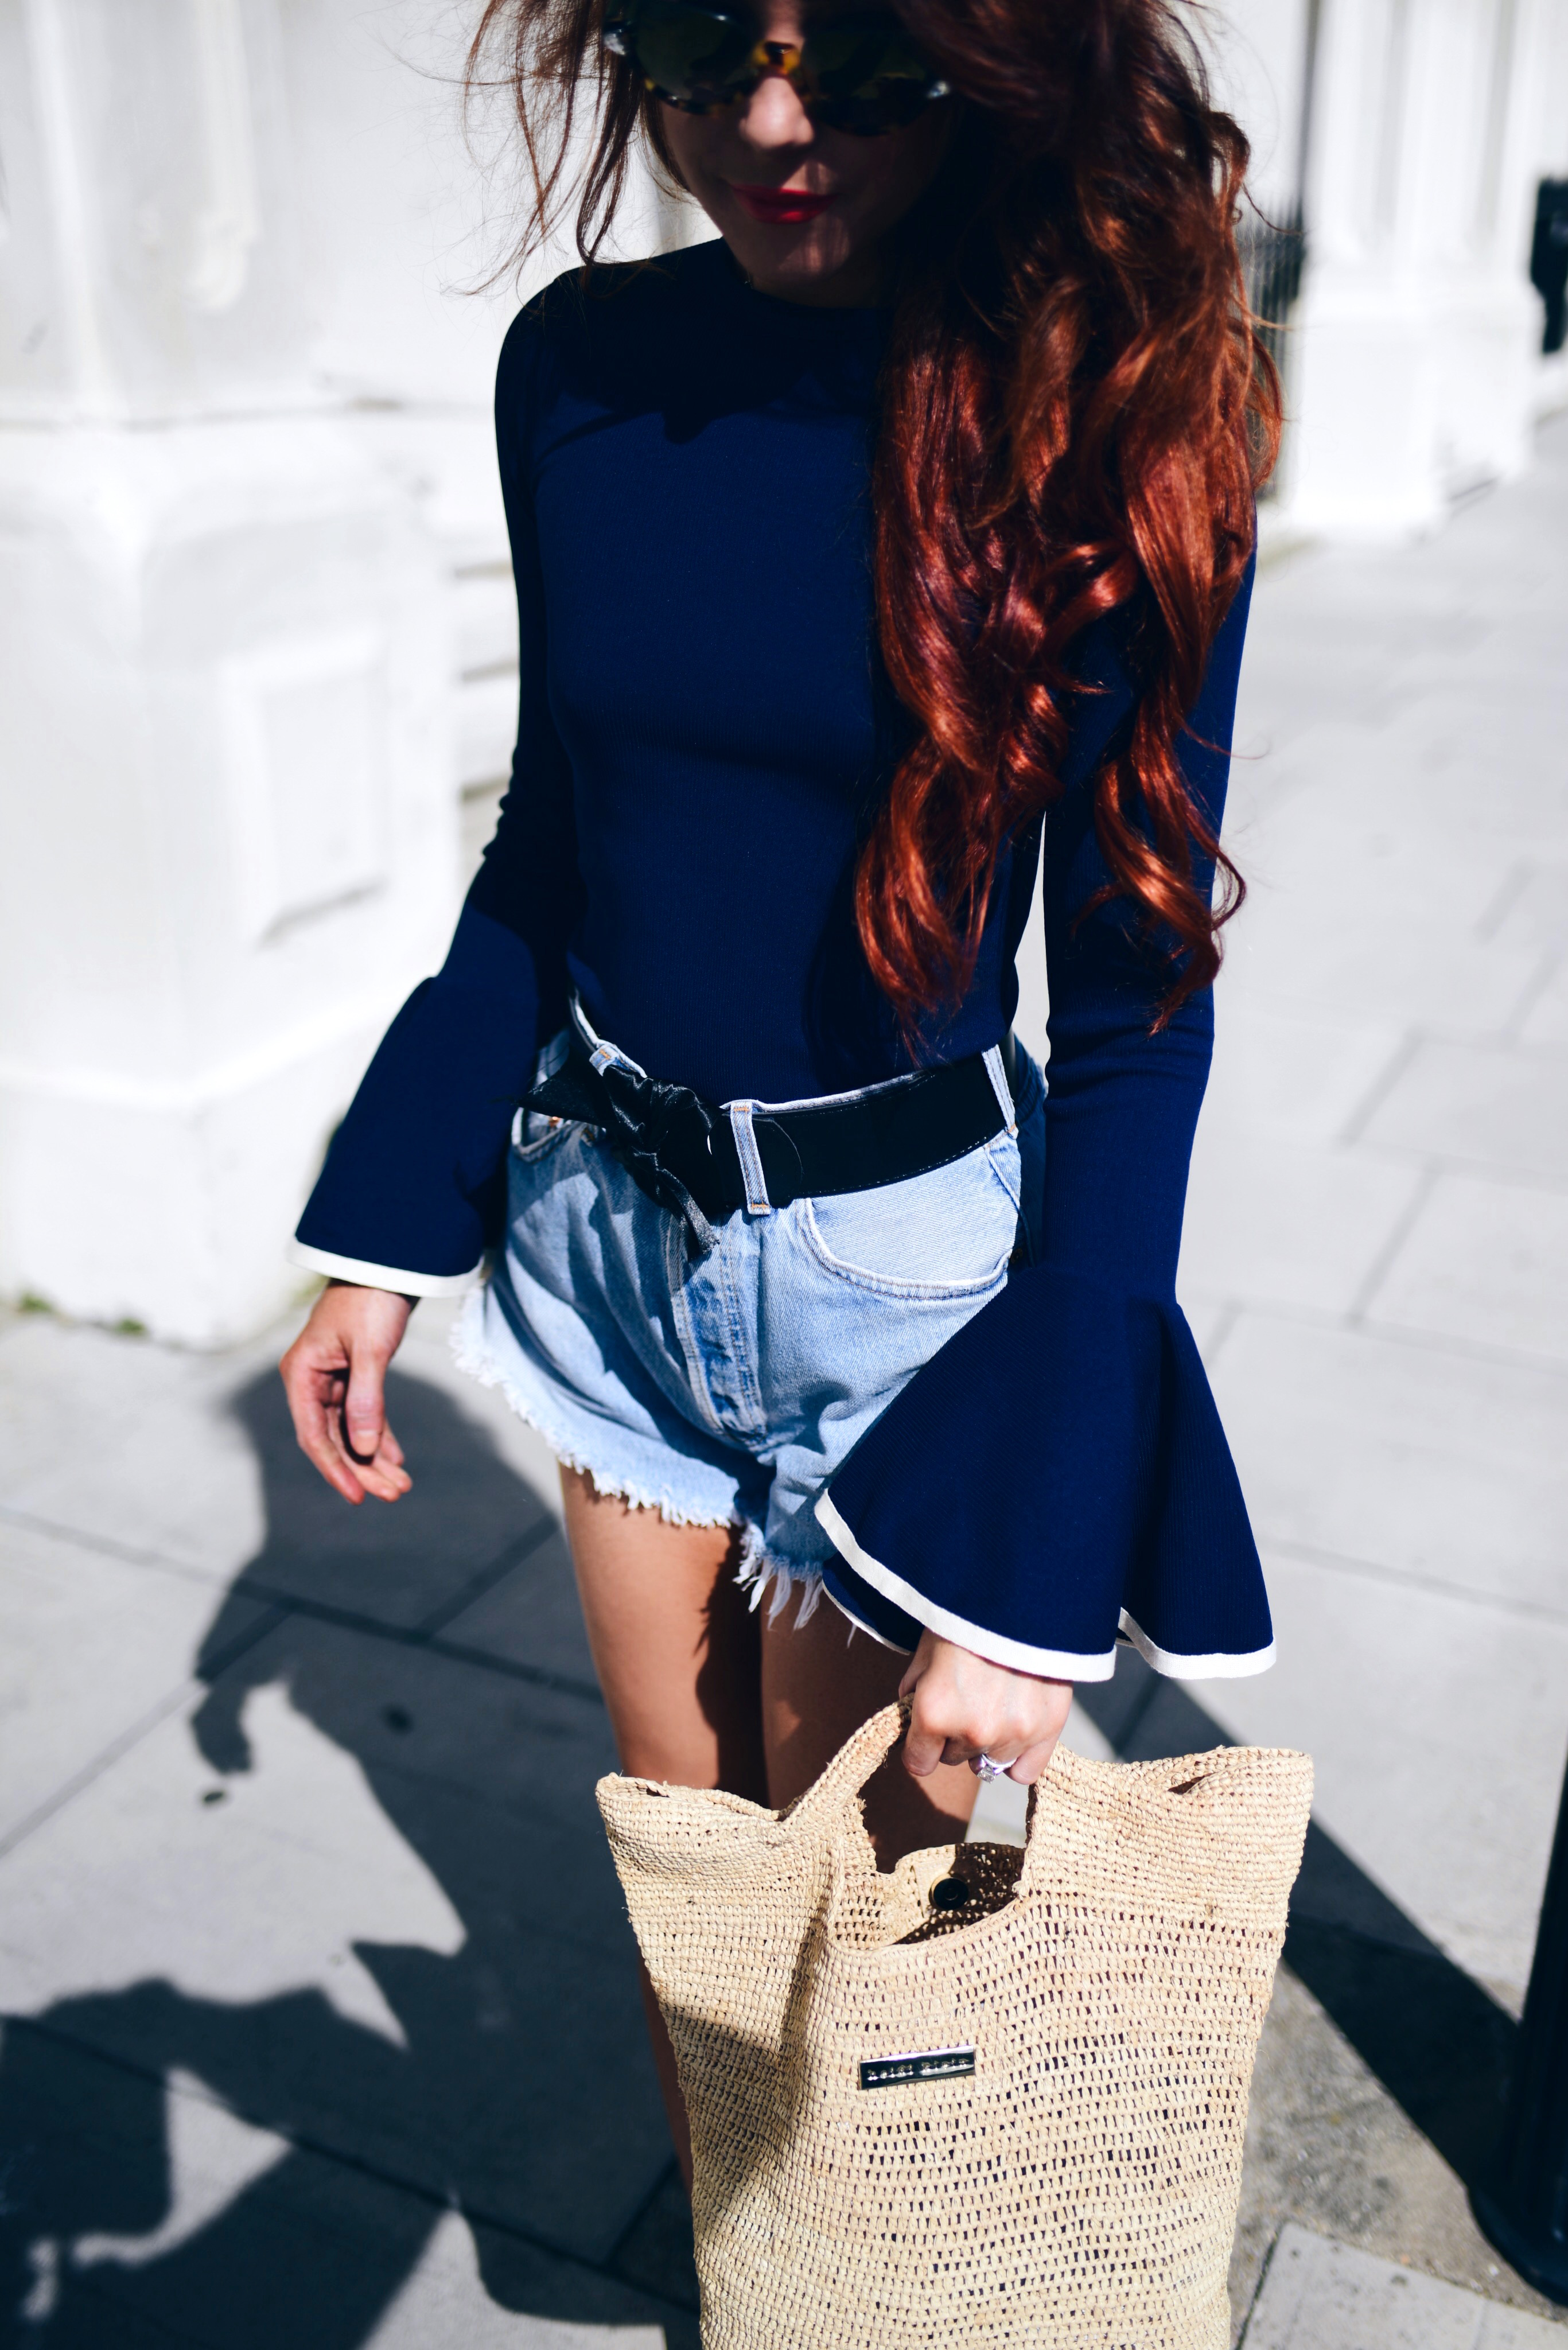 bell-shaped-sleeves-and-denim-jeans-shorts